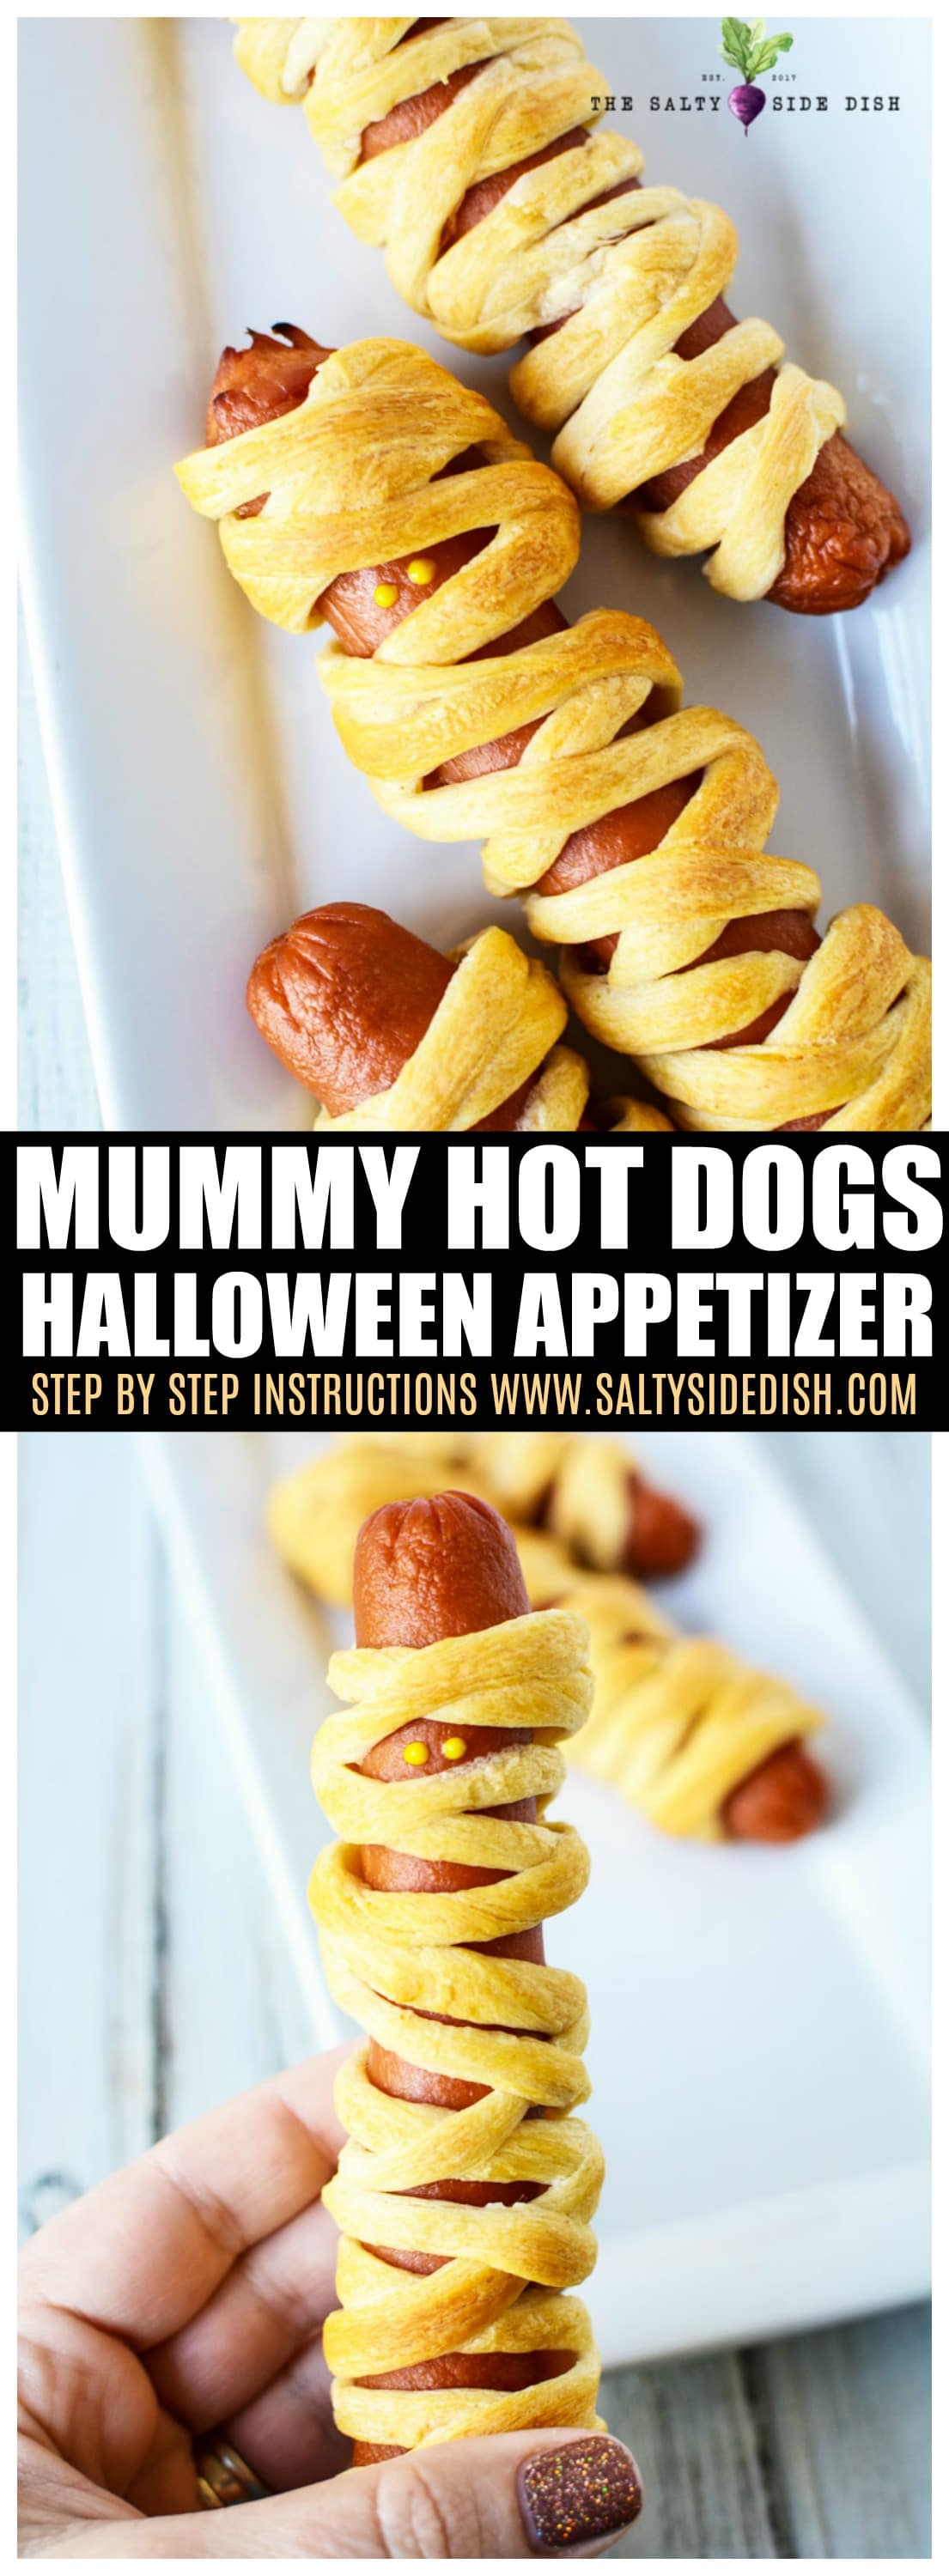 Mummy Hot Dogs | Easy Halloween Party Platter Appetizer Recipe | Top Tips! #appetizer #halloween #hotdogs #partyplatter